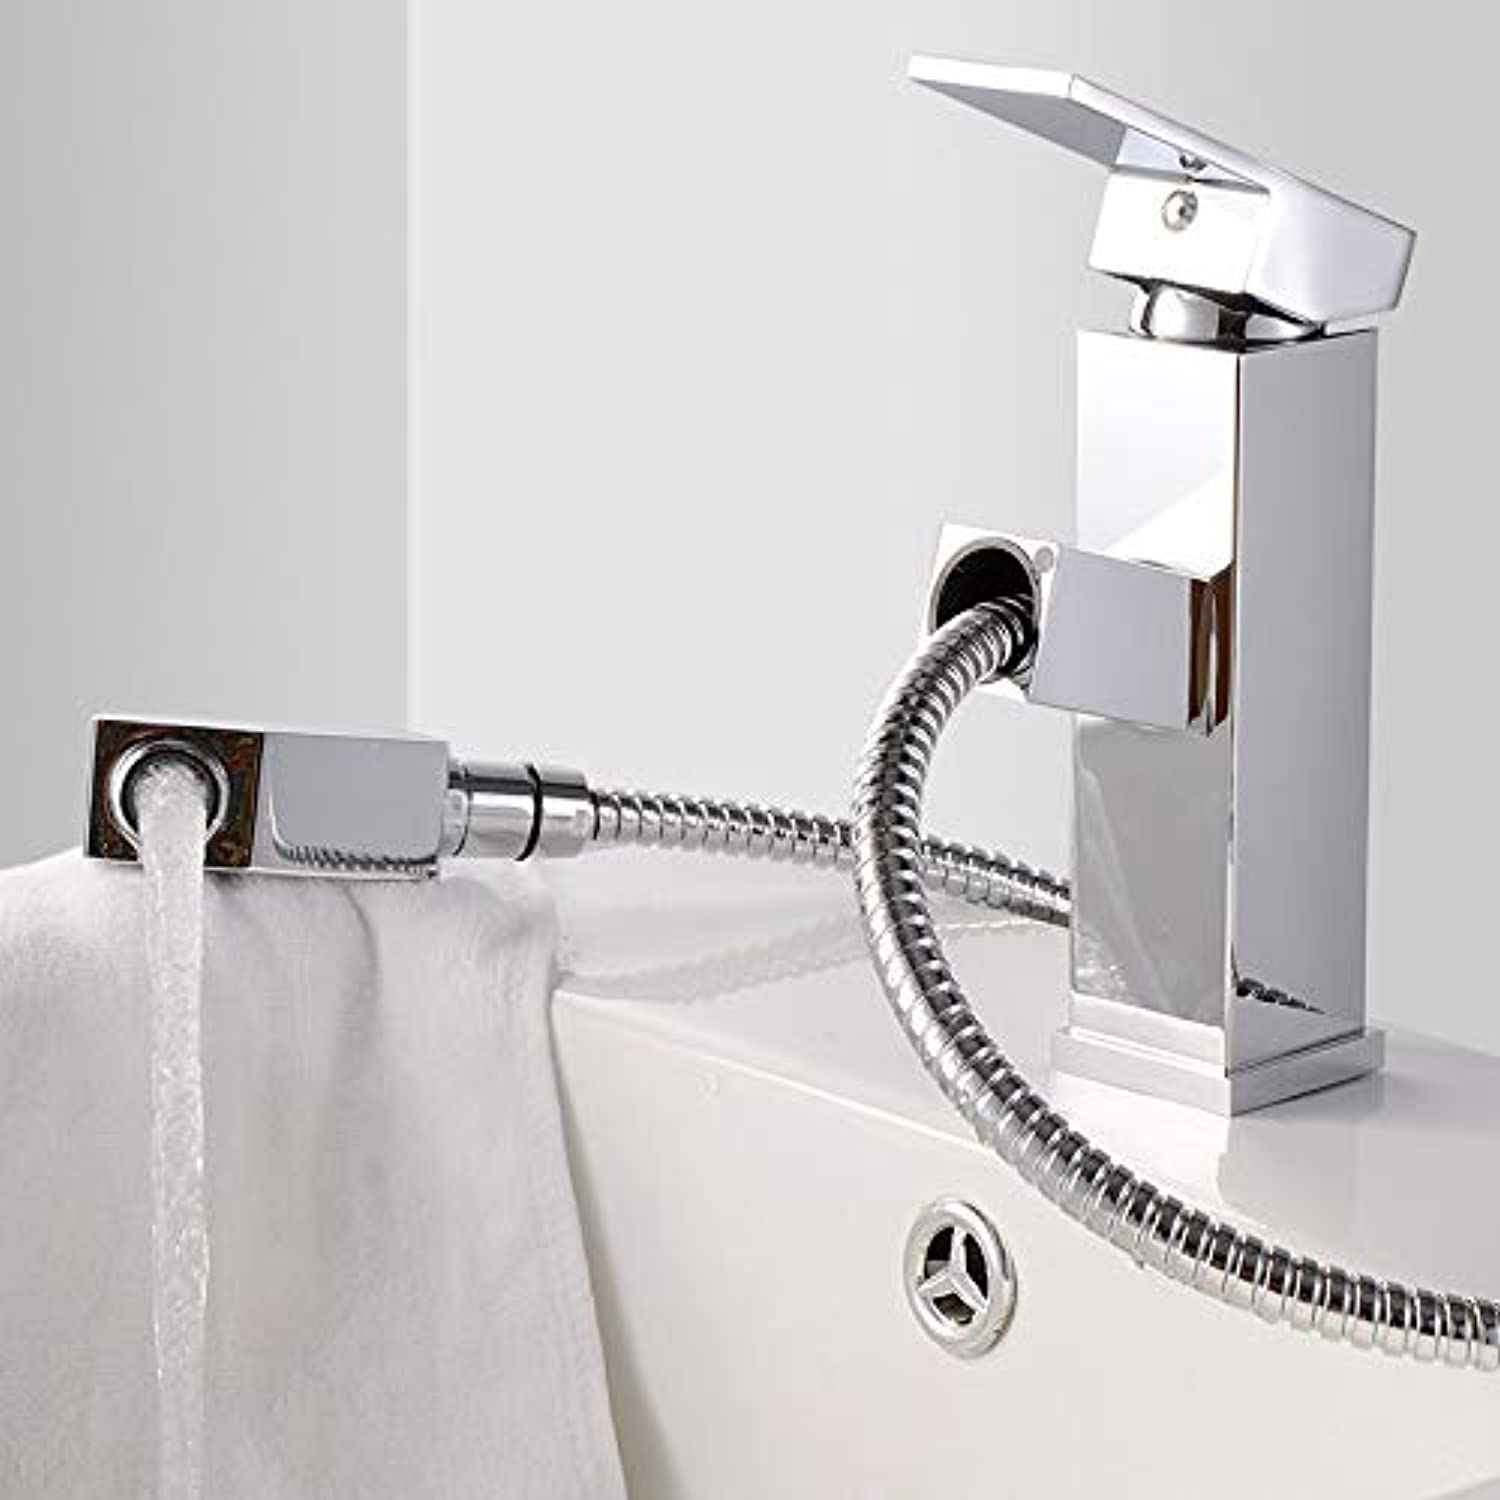 ROKTONG Sink Taps Filter Taps Bathroom Basin Pull Faucet Copper Body Faucet Multi-Function Pullable Hot And Cold Water Faucet redating Basin Faucet